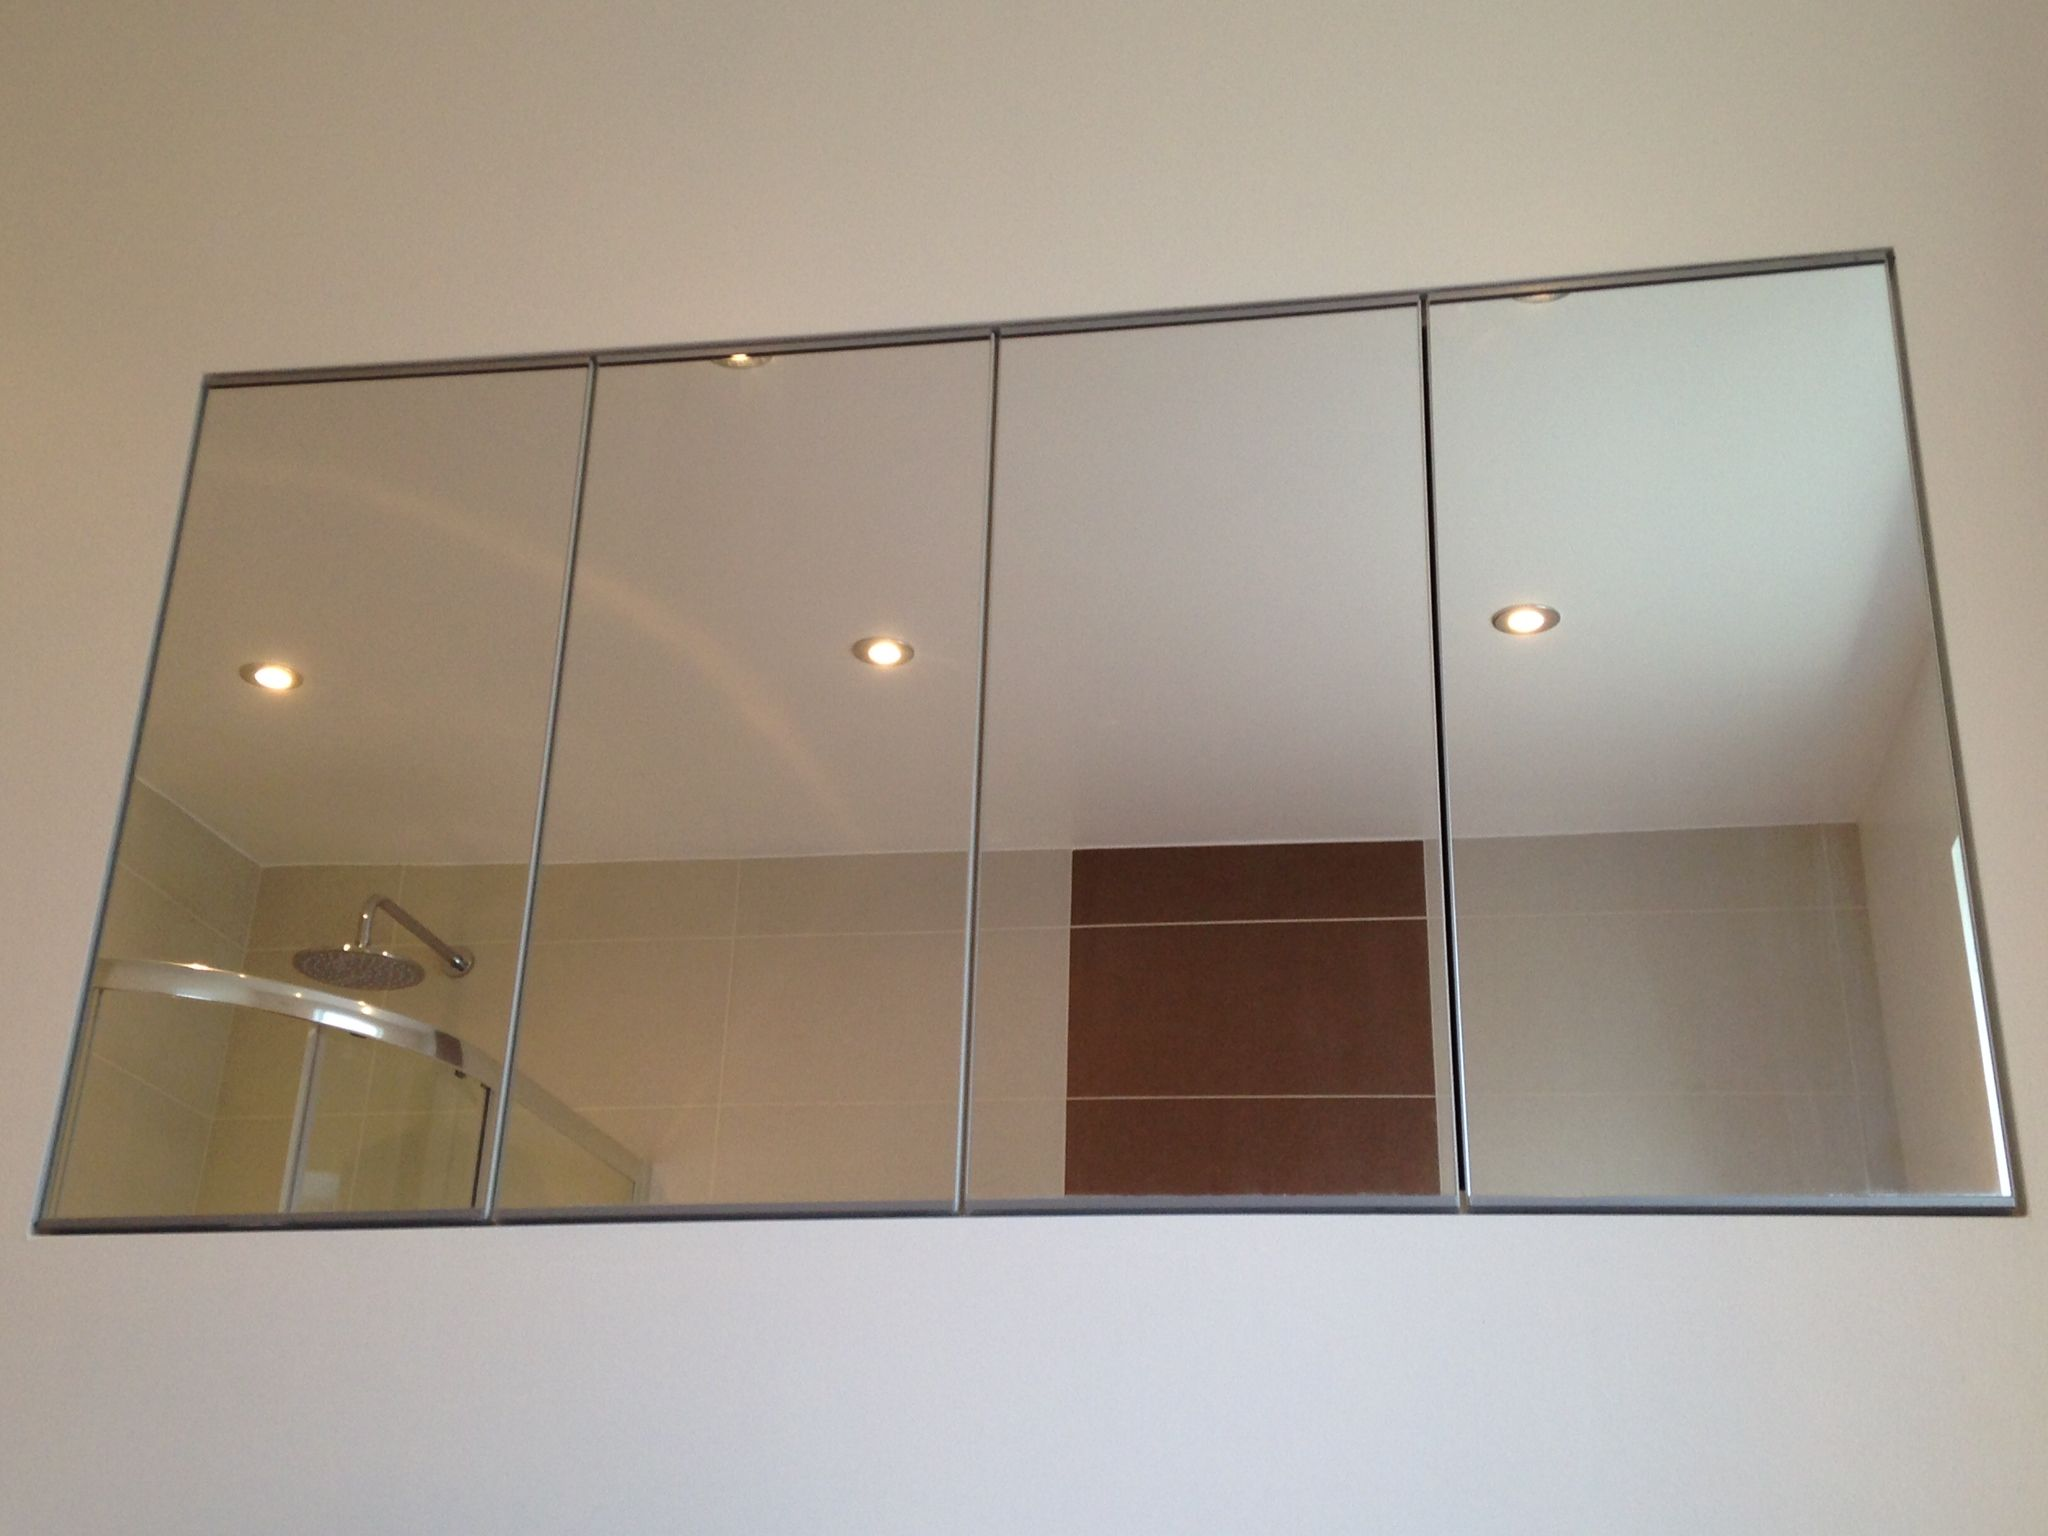 Ikea Cupboards A Pair Of Ikea Mirrored Cupboards Are Recessed Flush With